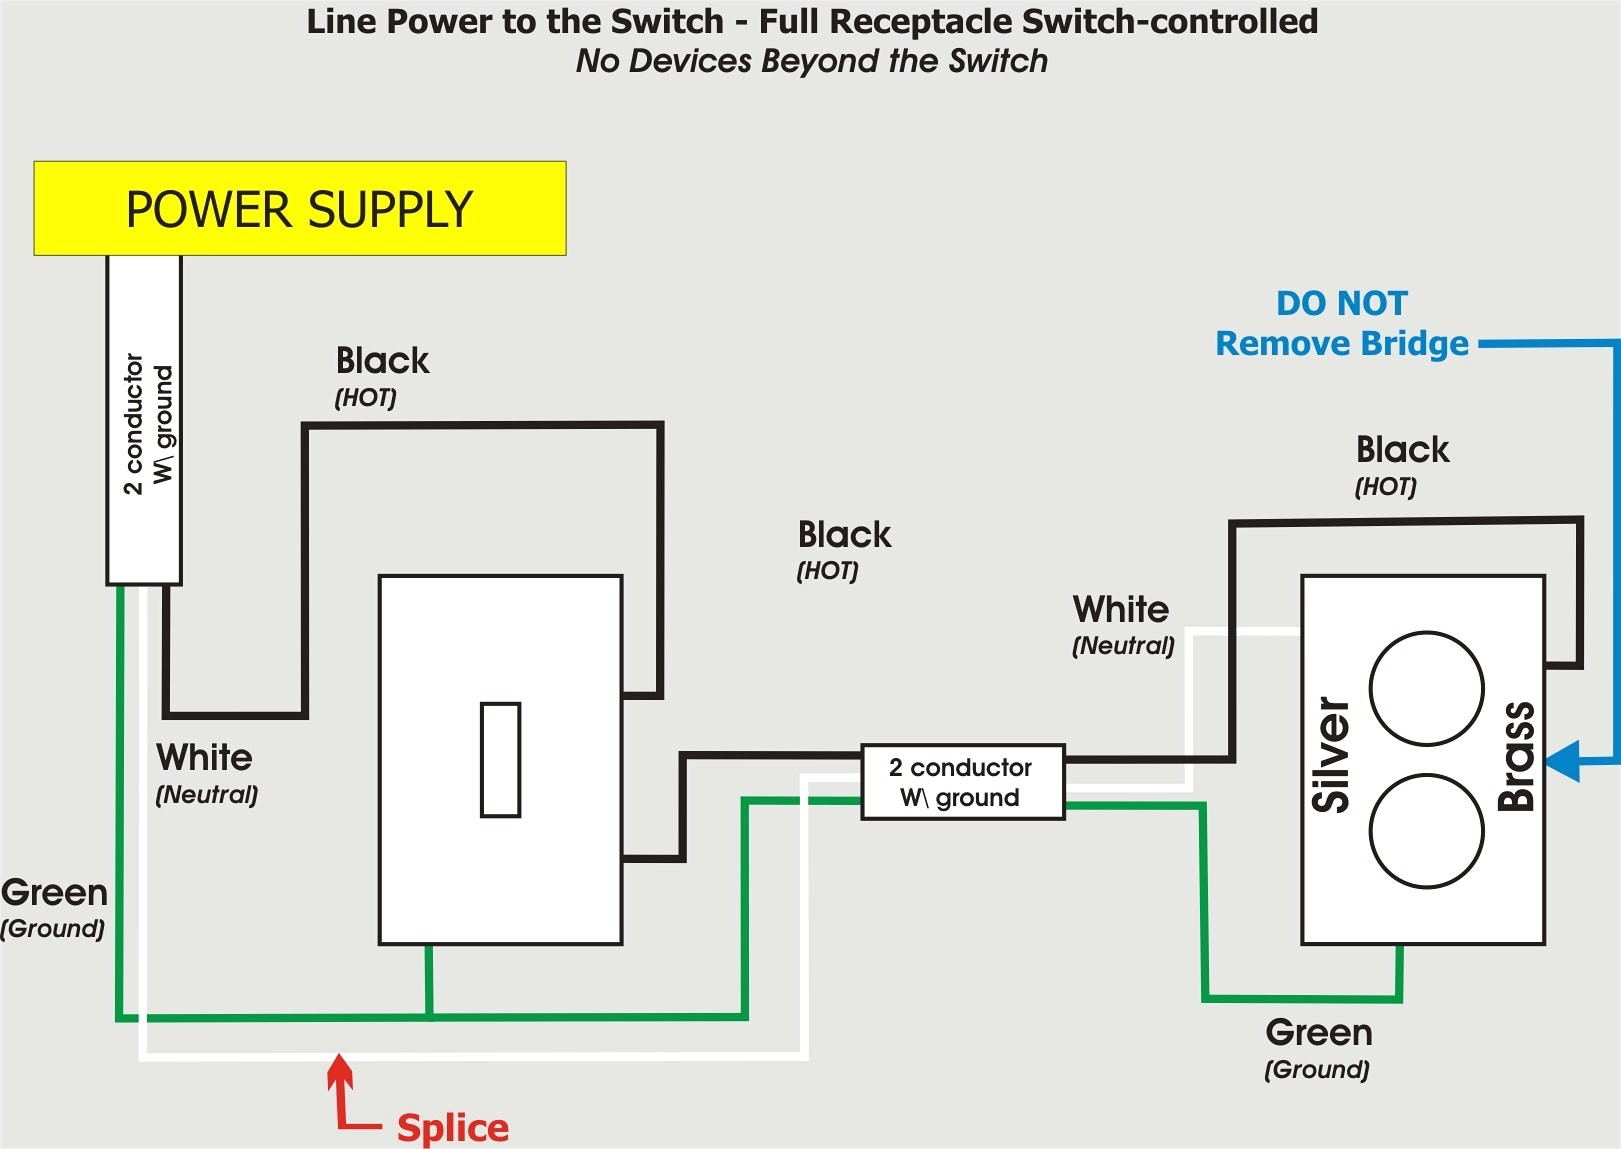 [QNCB_7524]  NM_0024] Wiring Diagram Gfi Outlet Together With Light Switch And Outlet  Wiring Download Diagram | Light From Receptacle To Switch Wiring Diagram |  | Pila Kapemie Mohammedshrine Librar Wiring 101